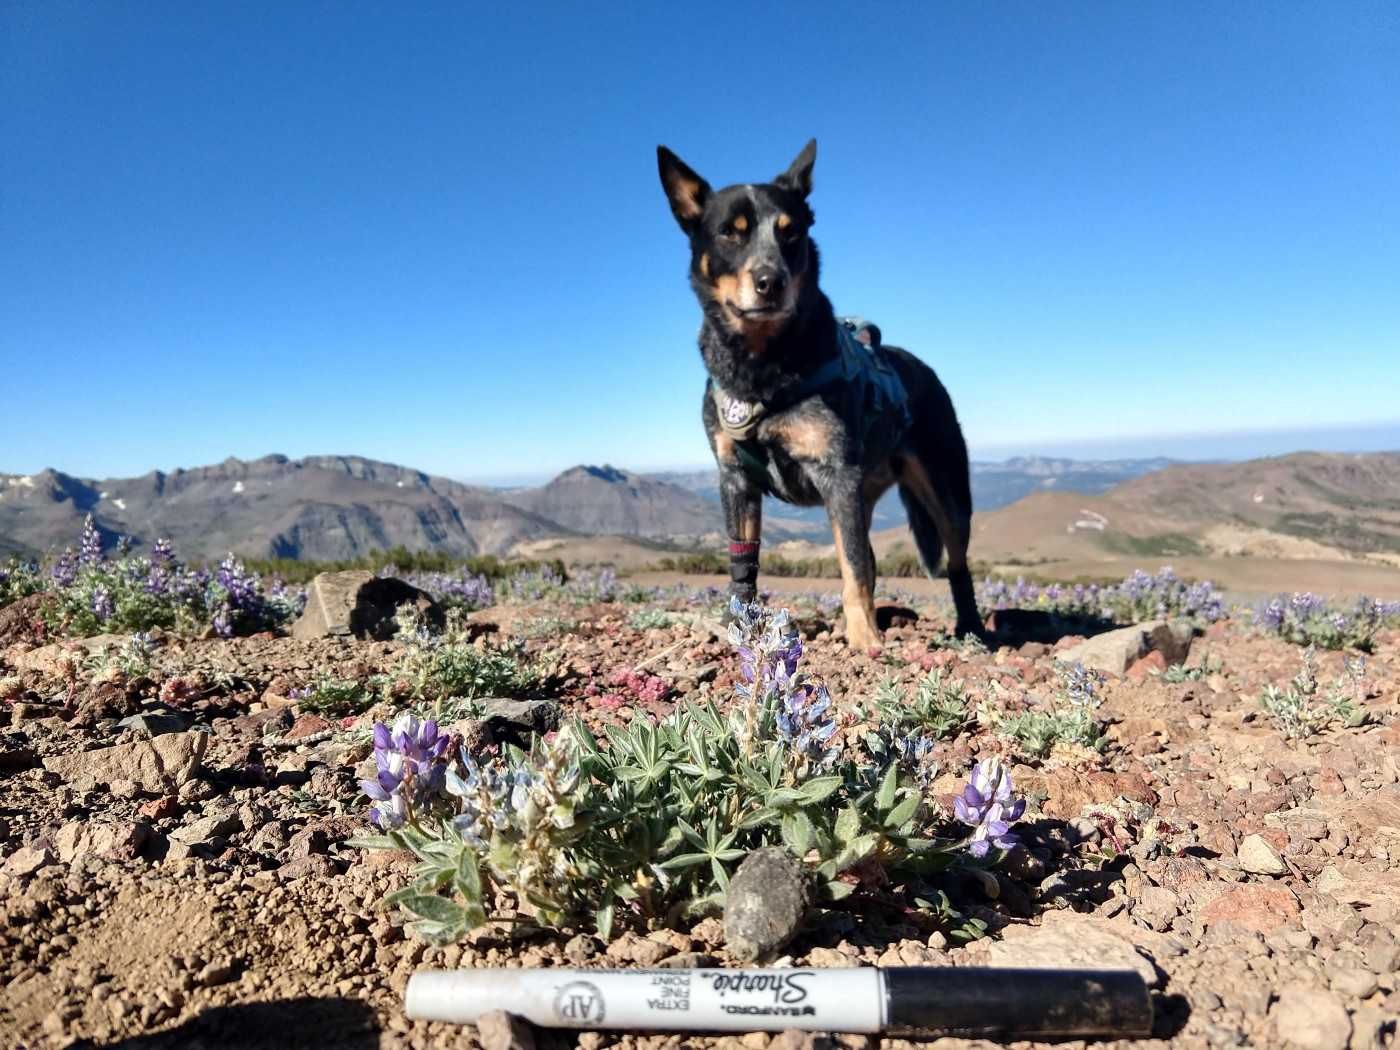 a dog overlooks fox scat that's next to purple flowers